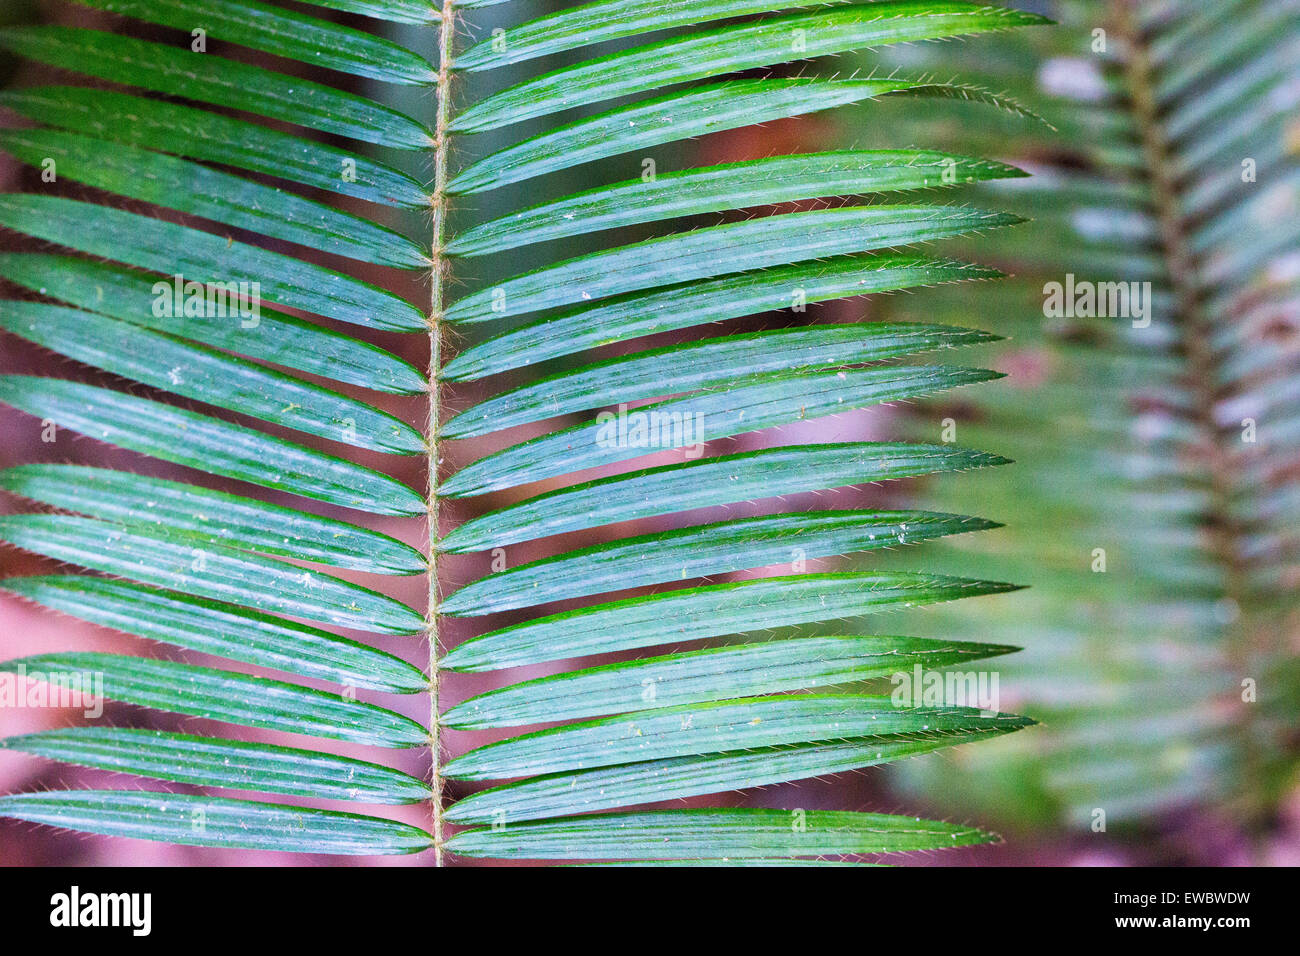 Detail of palm foliage with tiny hair-like spines on each leaf, Taman Negara, Malaysia - Stock Image